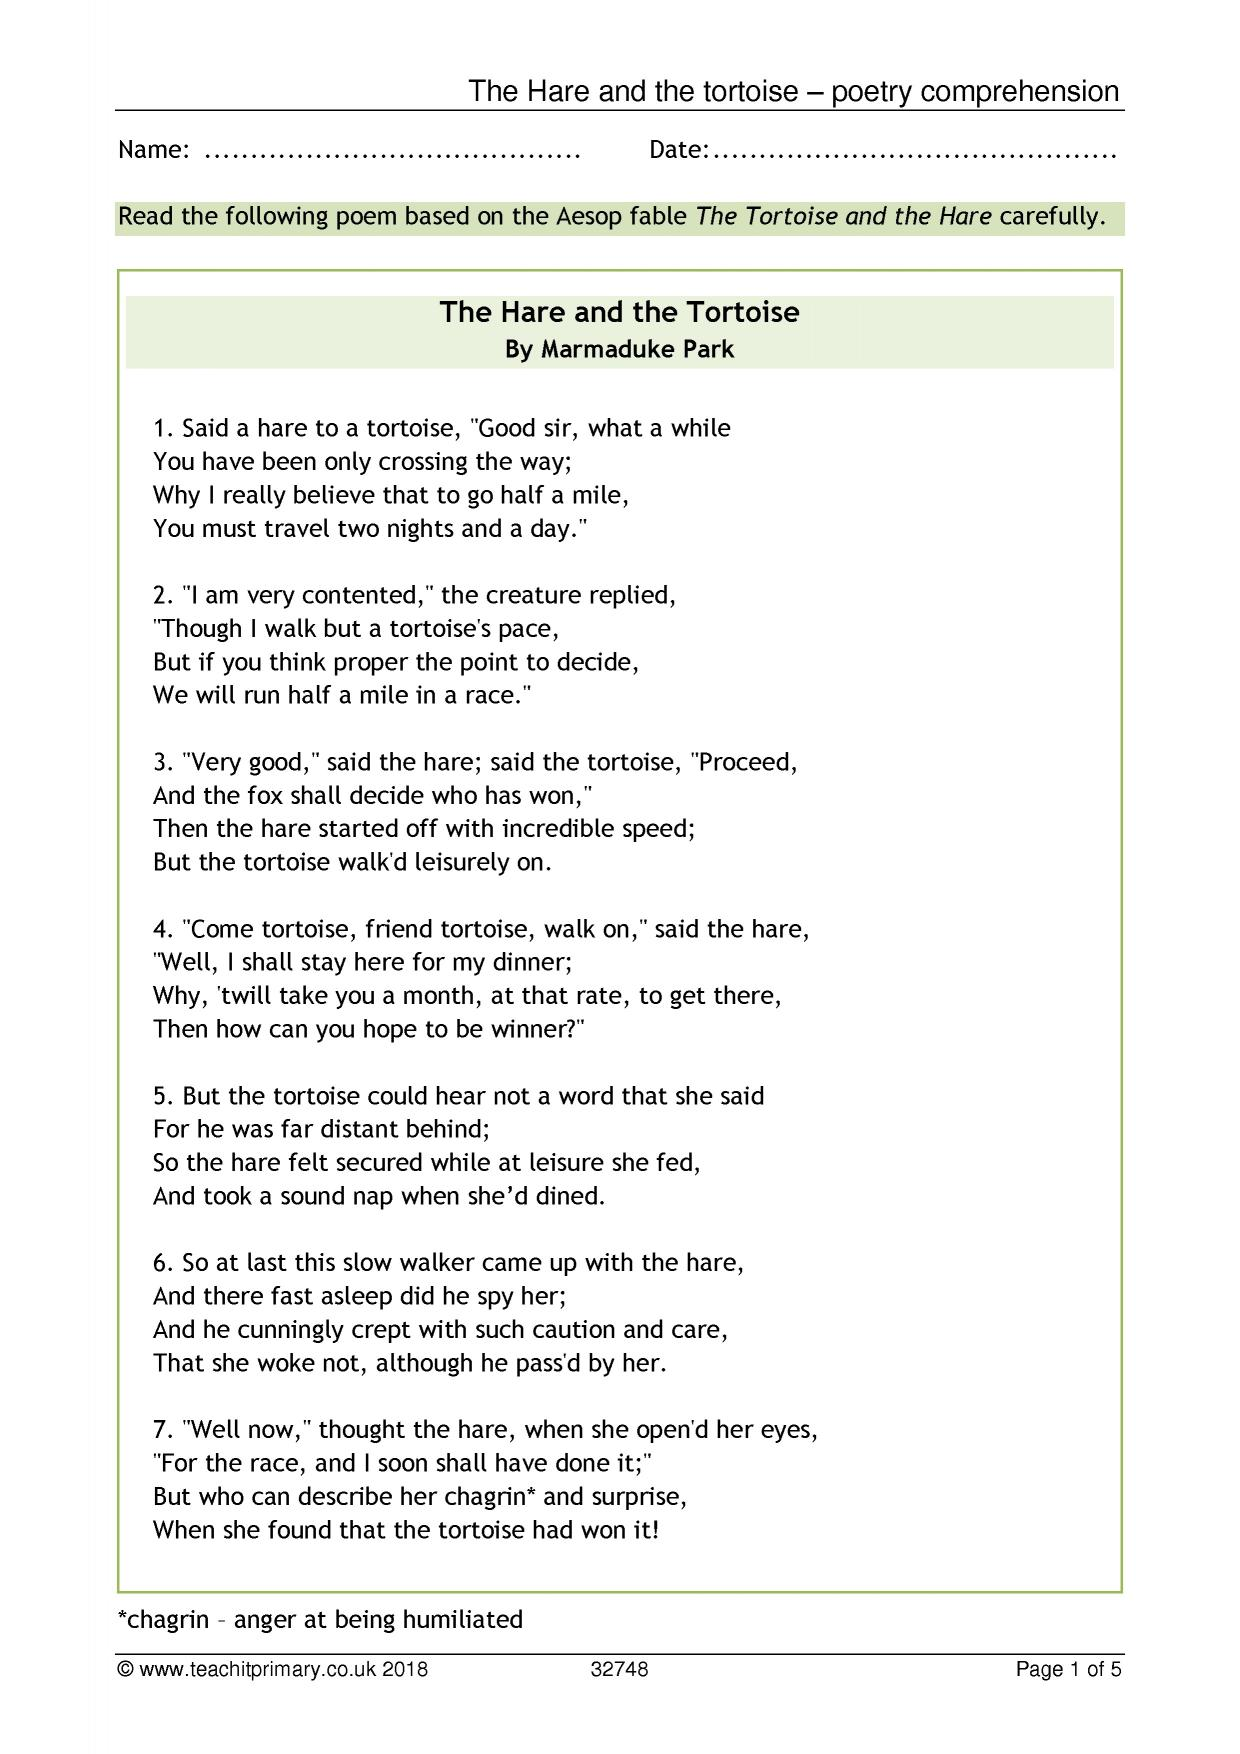 Poetry / Comprehension - The Hare and the Tortoise